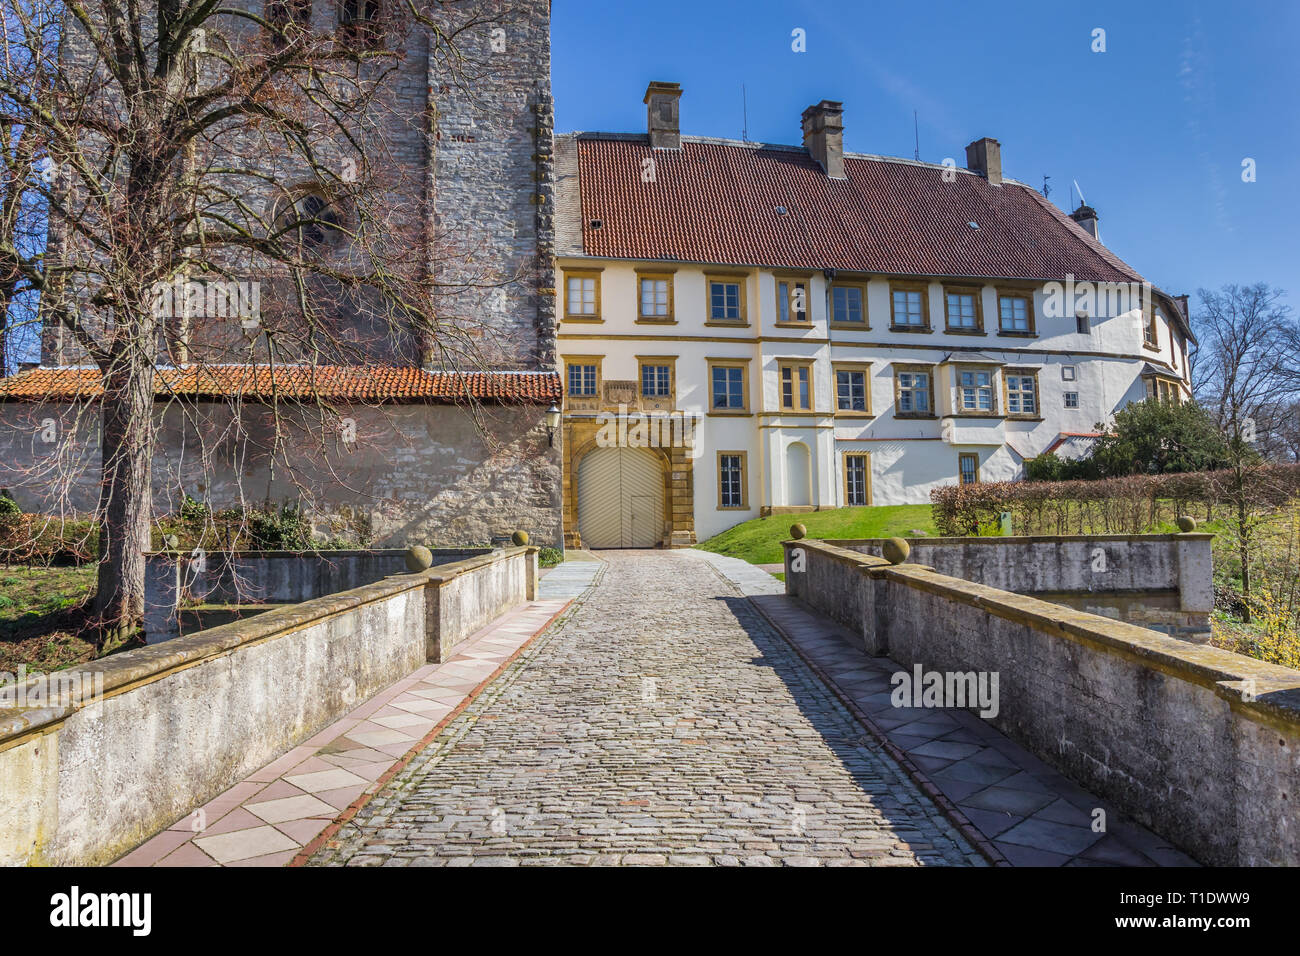 Bridge leading to the castle in Rheda-Wiedenbruck, Germany - Stock Image